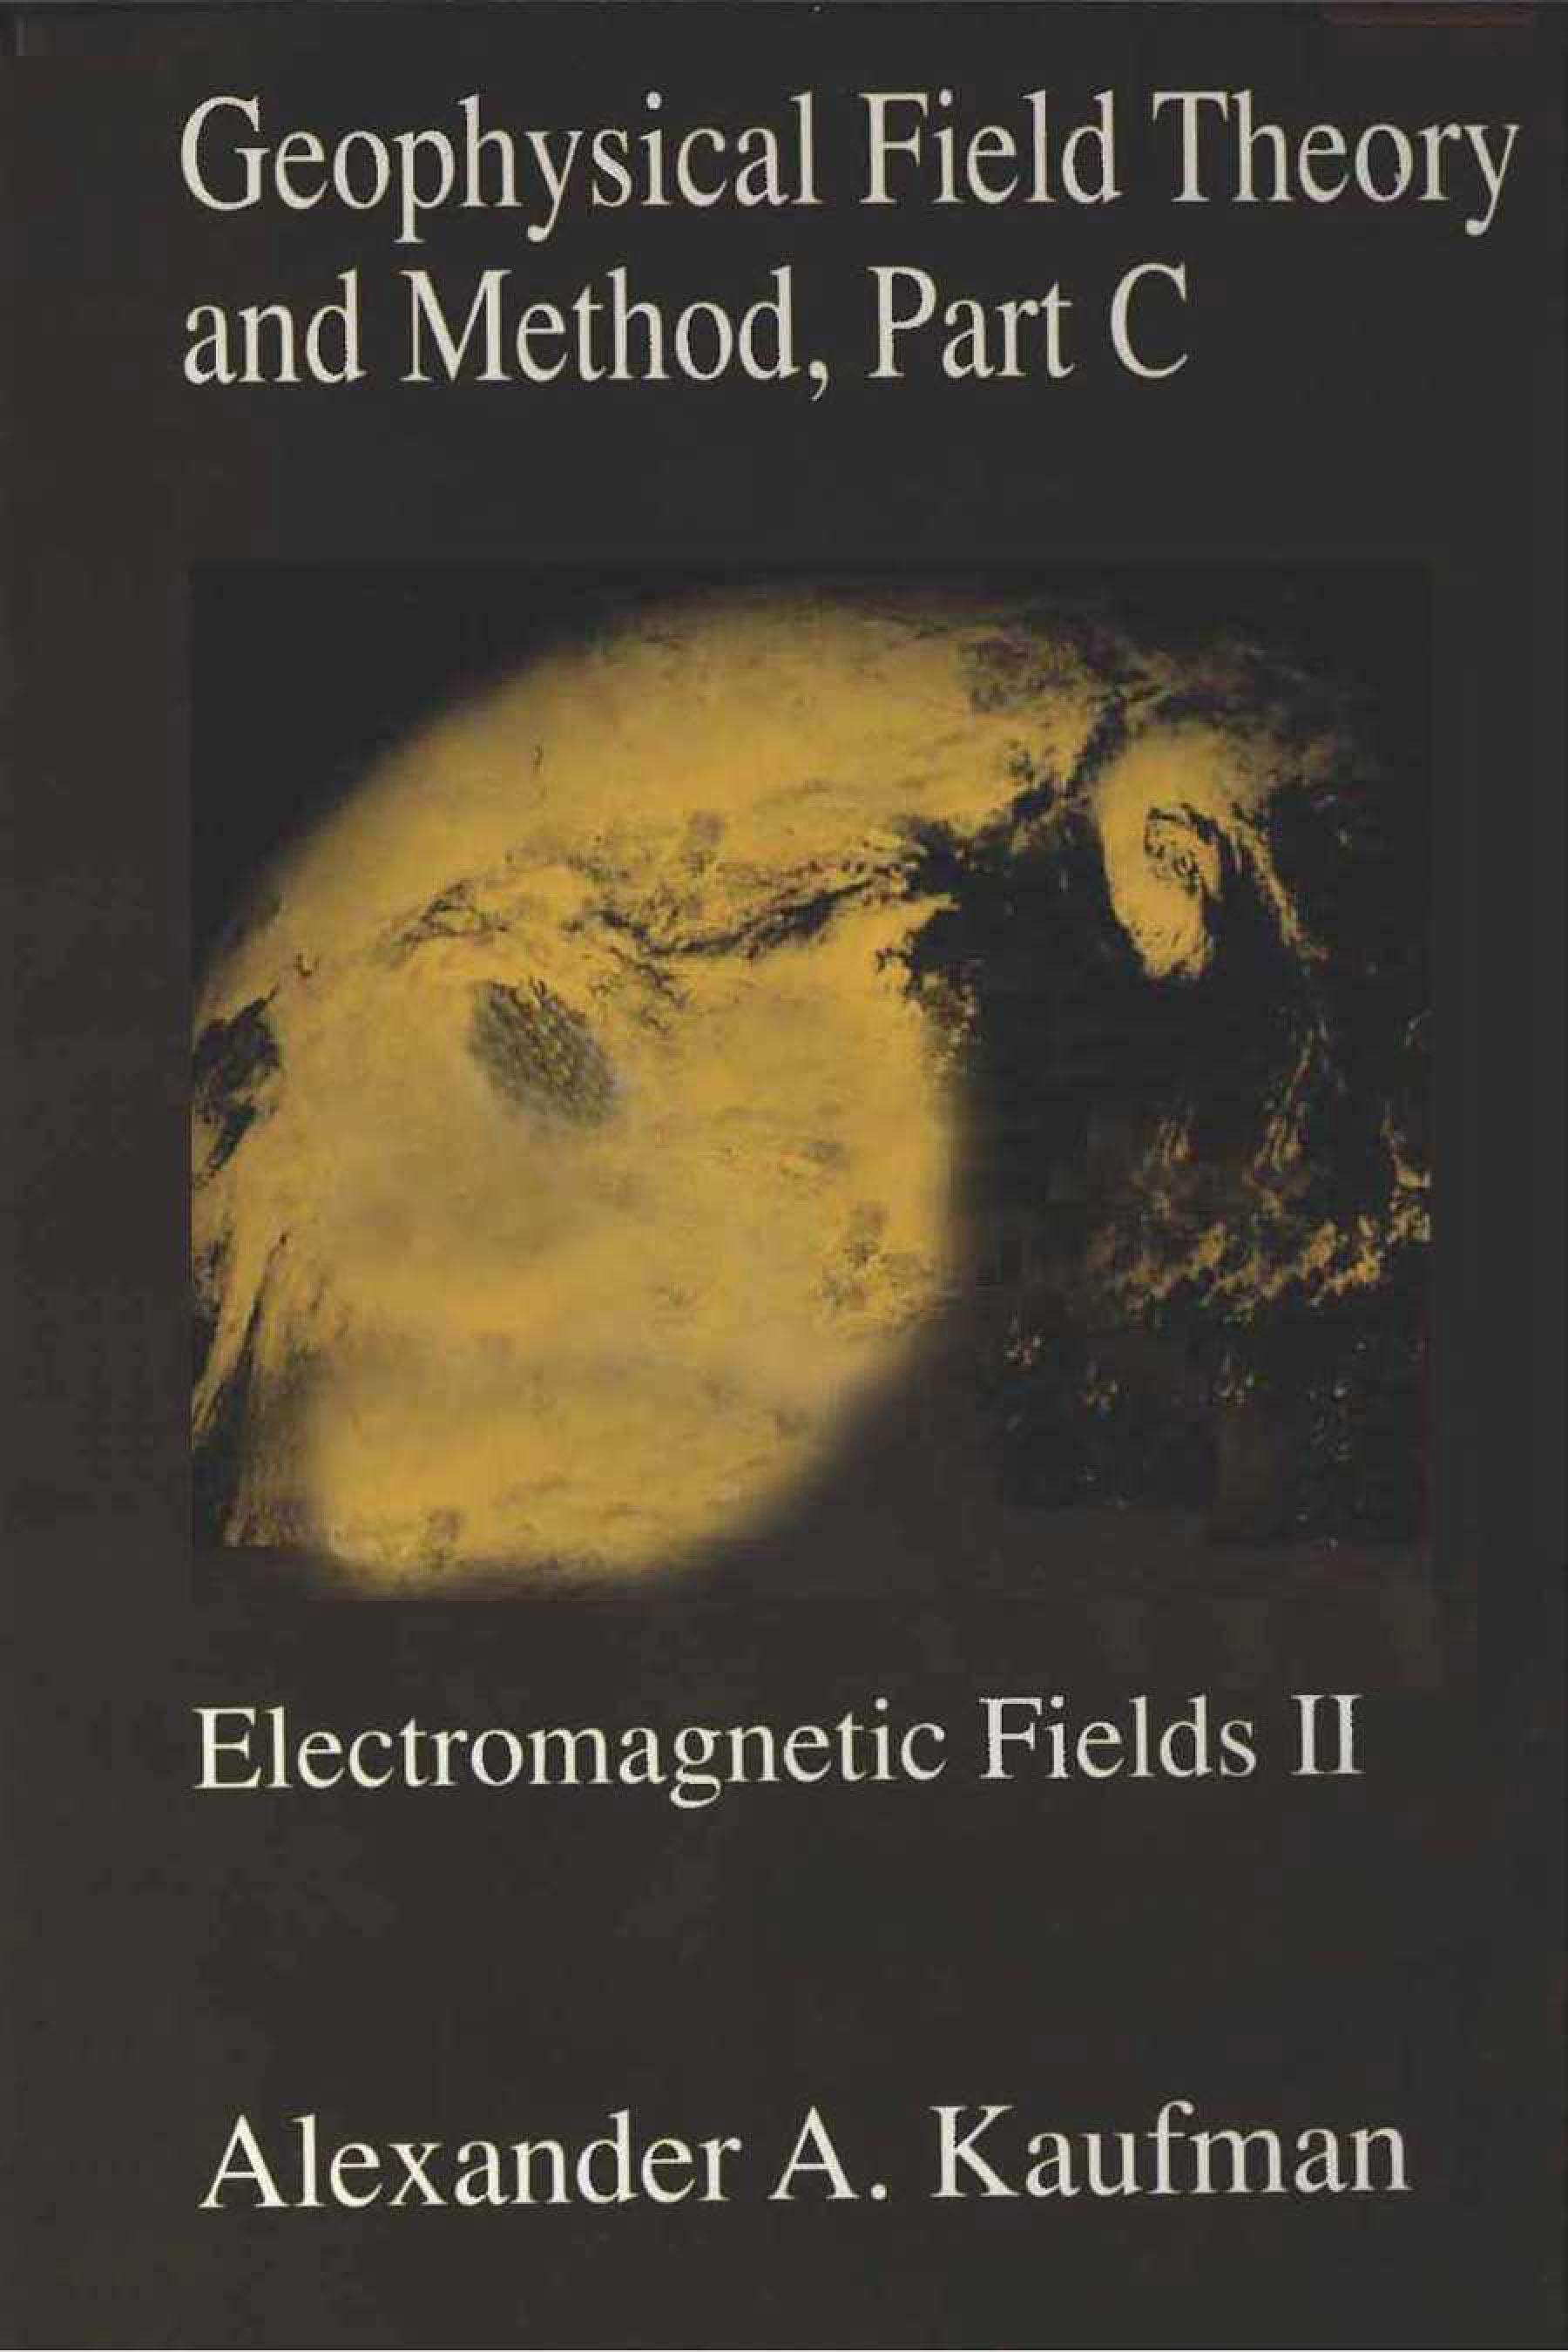 Geophysical Field Theory and Method, Part C: Electromagnetic Fields II